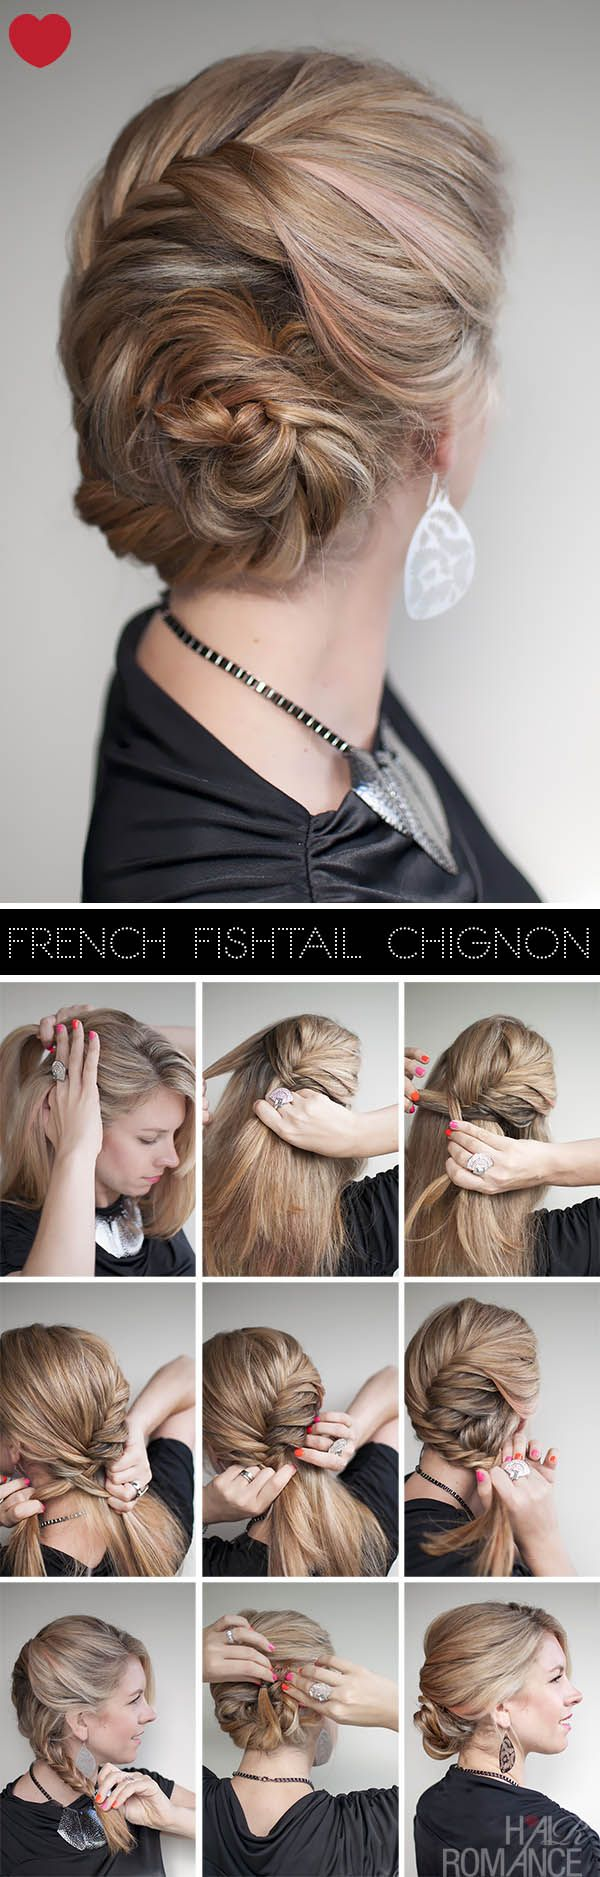 updos step by step with pictures and instructions | Hairstyle tutorial – French fishtail braid chignon | Hair Romance